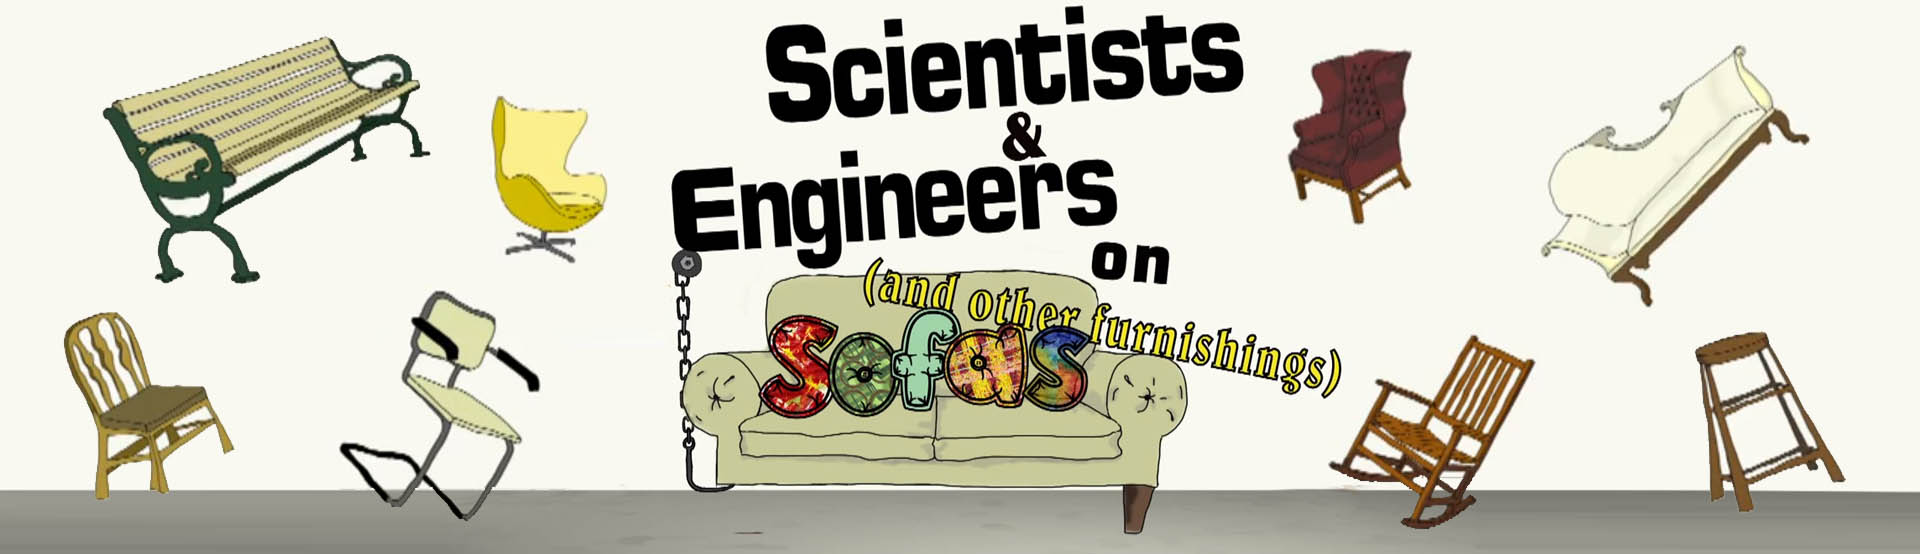 Scientists & Engineers On Sofas (And Other Furnishings)